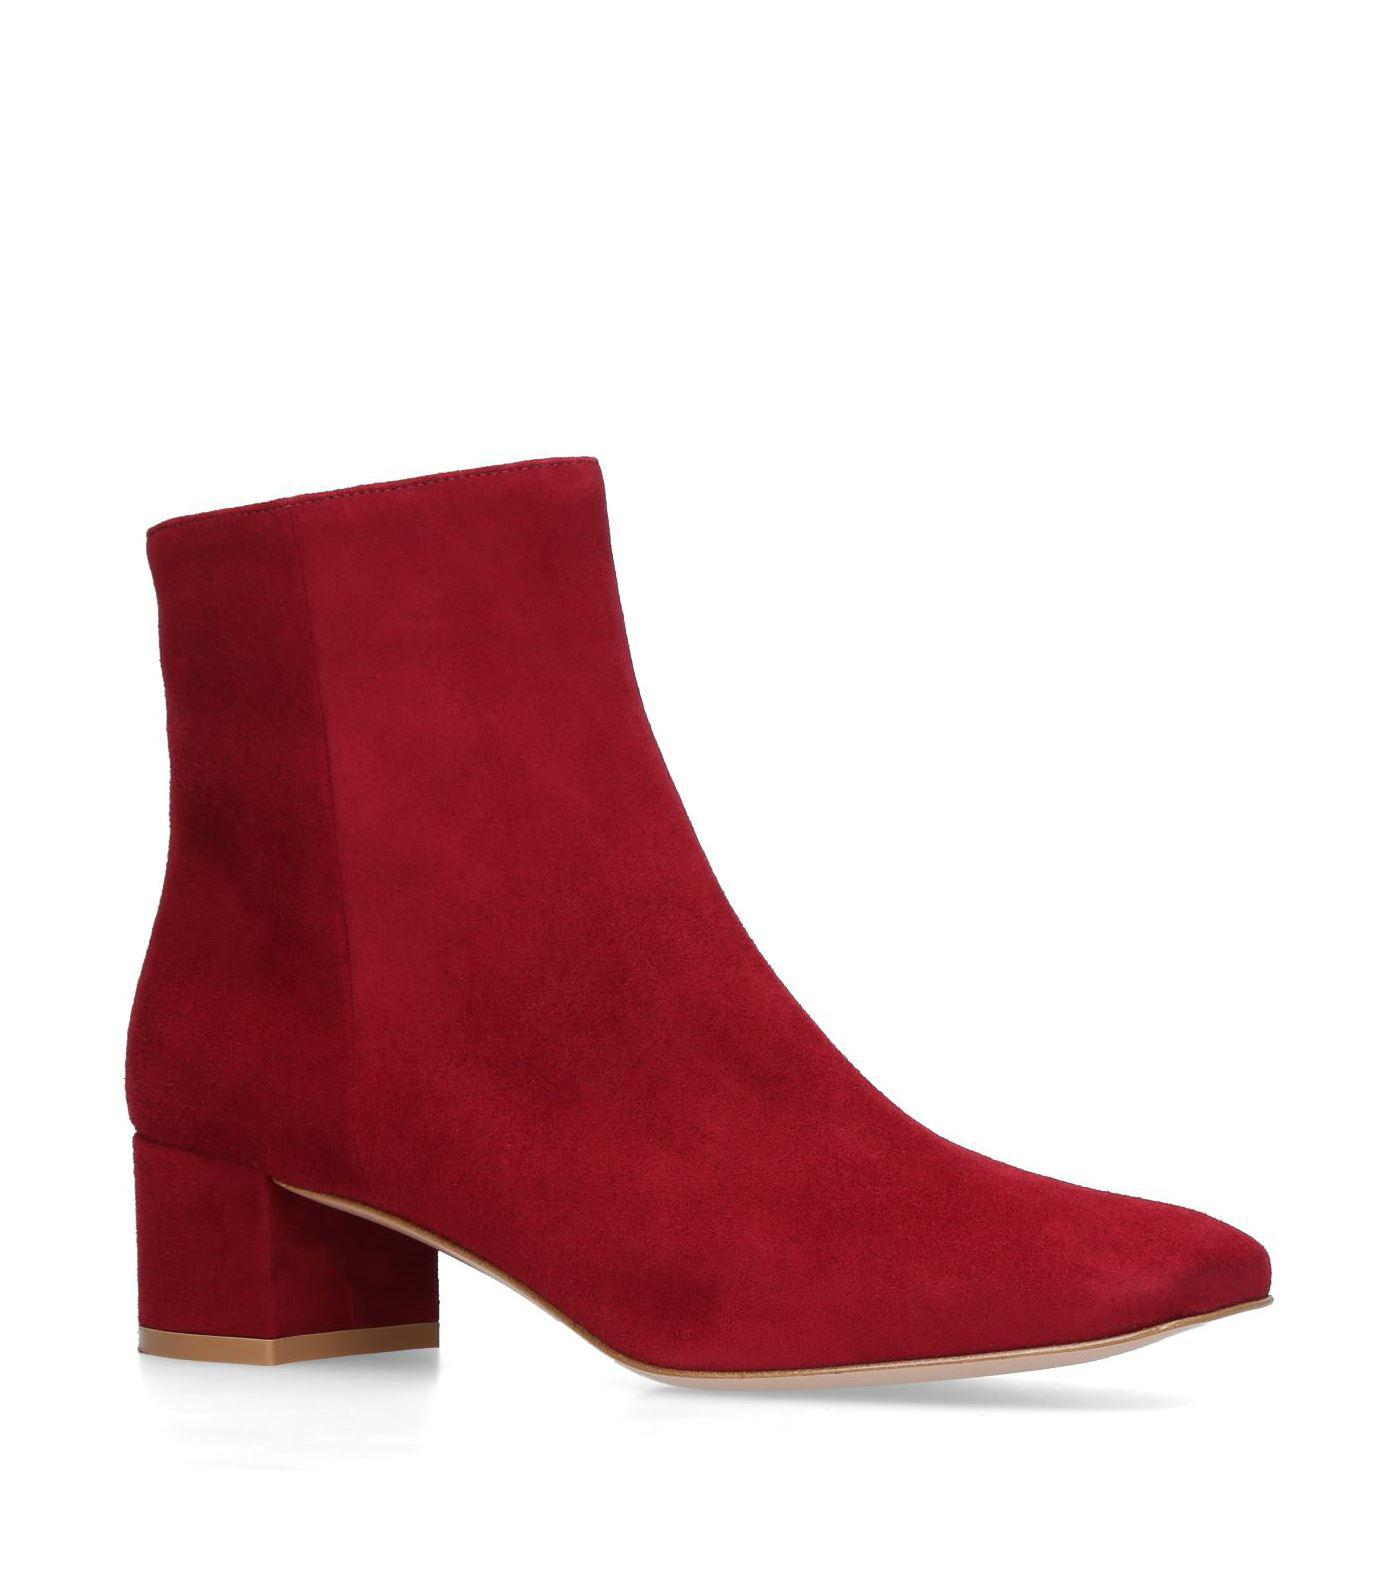 discount codes shopping online Gianvito Rossi Trish suede ankle boots cheap sale explore cheap Inexpensive footlocker pictures online nZy9ZUKo